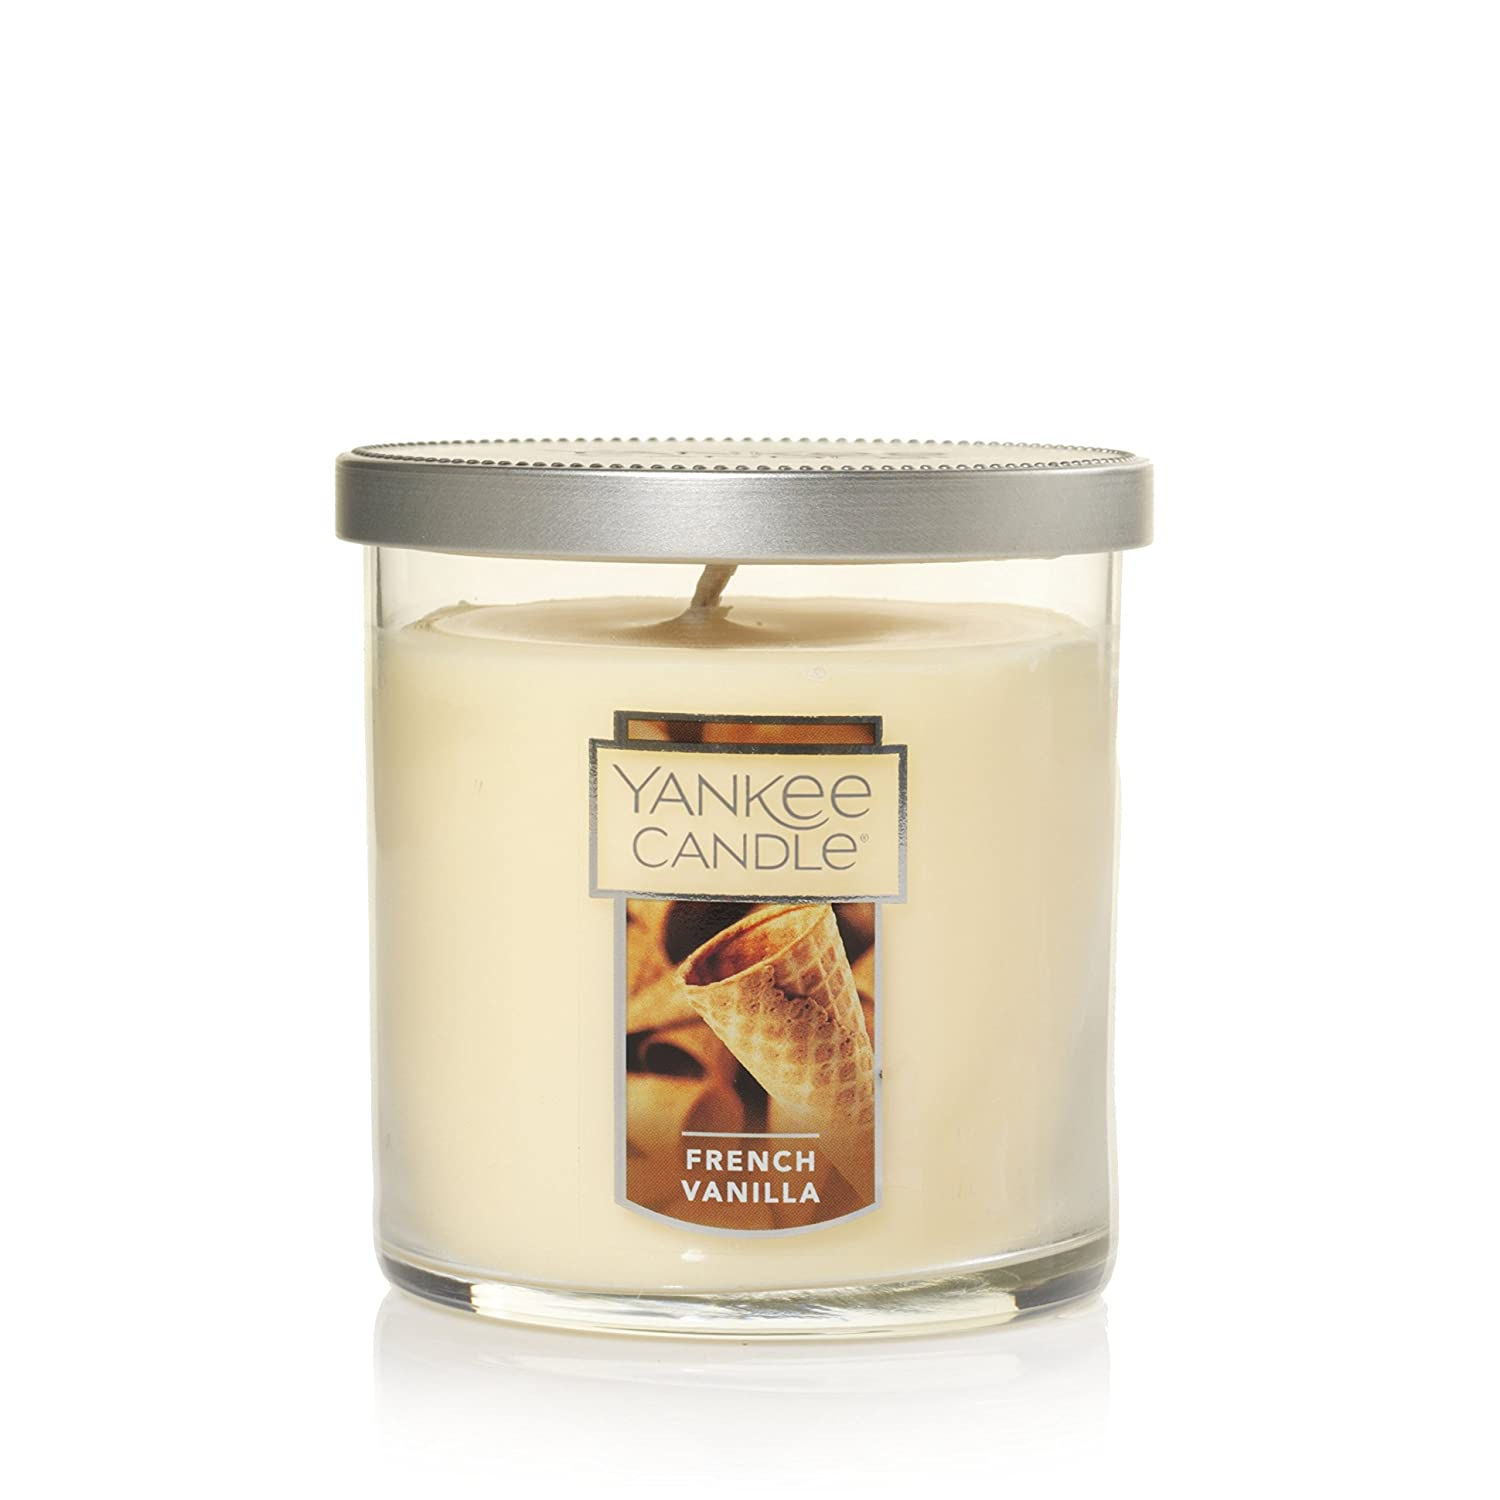 Yankee Candle Small Tumbler Candle, French Vanilla Yankee Candle Company 1162816Z